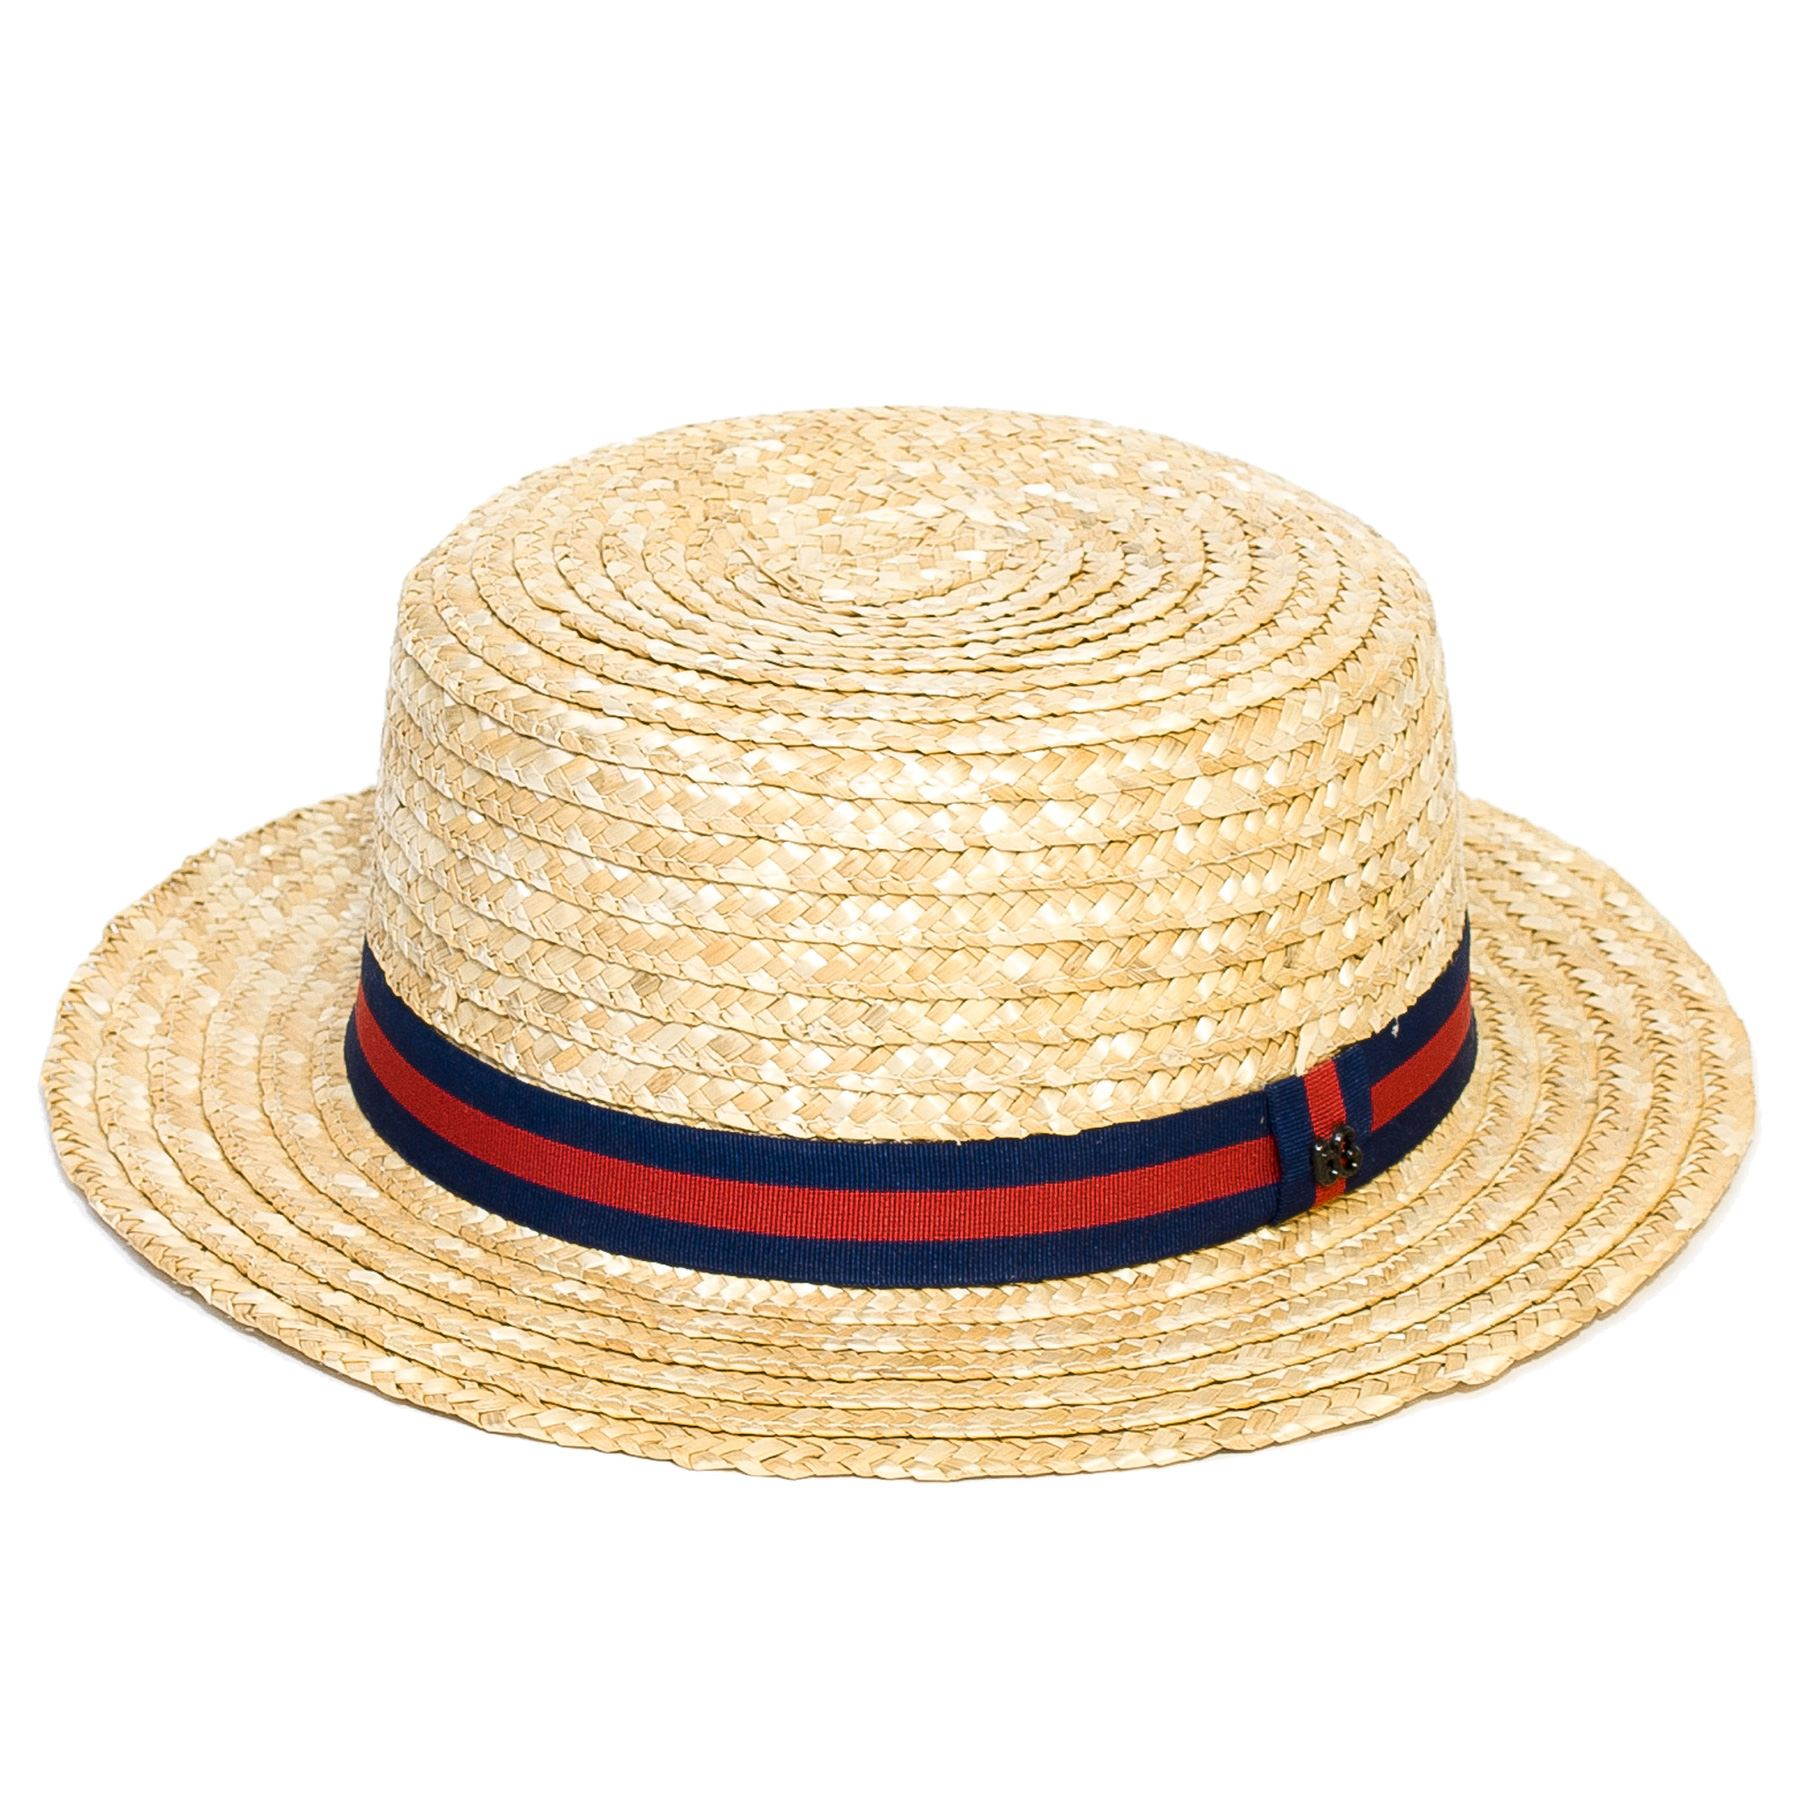 Straw hats - protect your head, keep it cool and look awesome! There is a high frequency of hat wearers among musicians. Real cowboys need a hat, too.